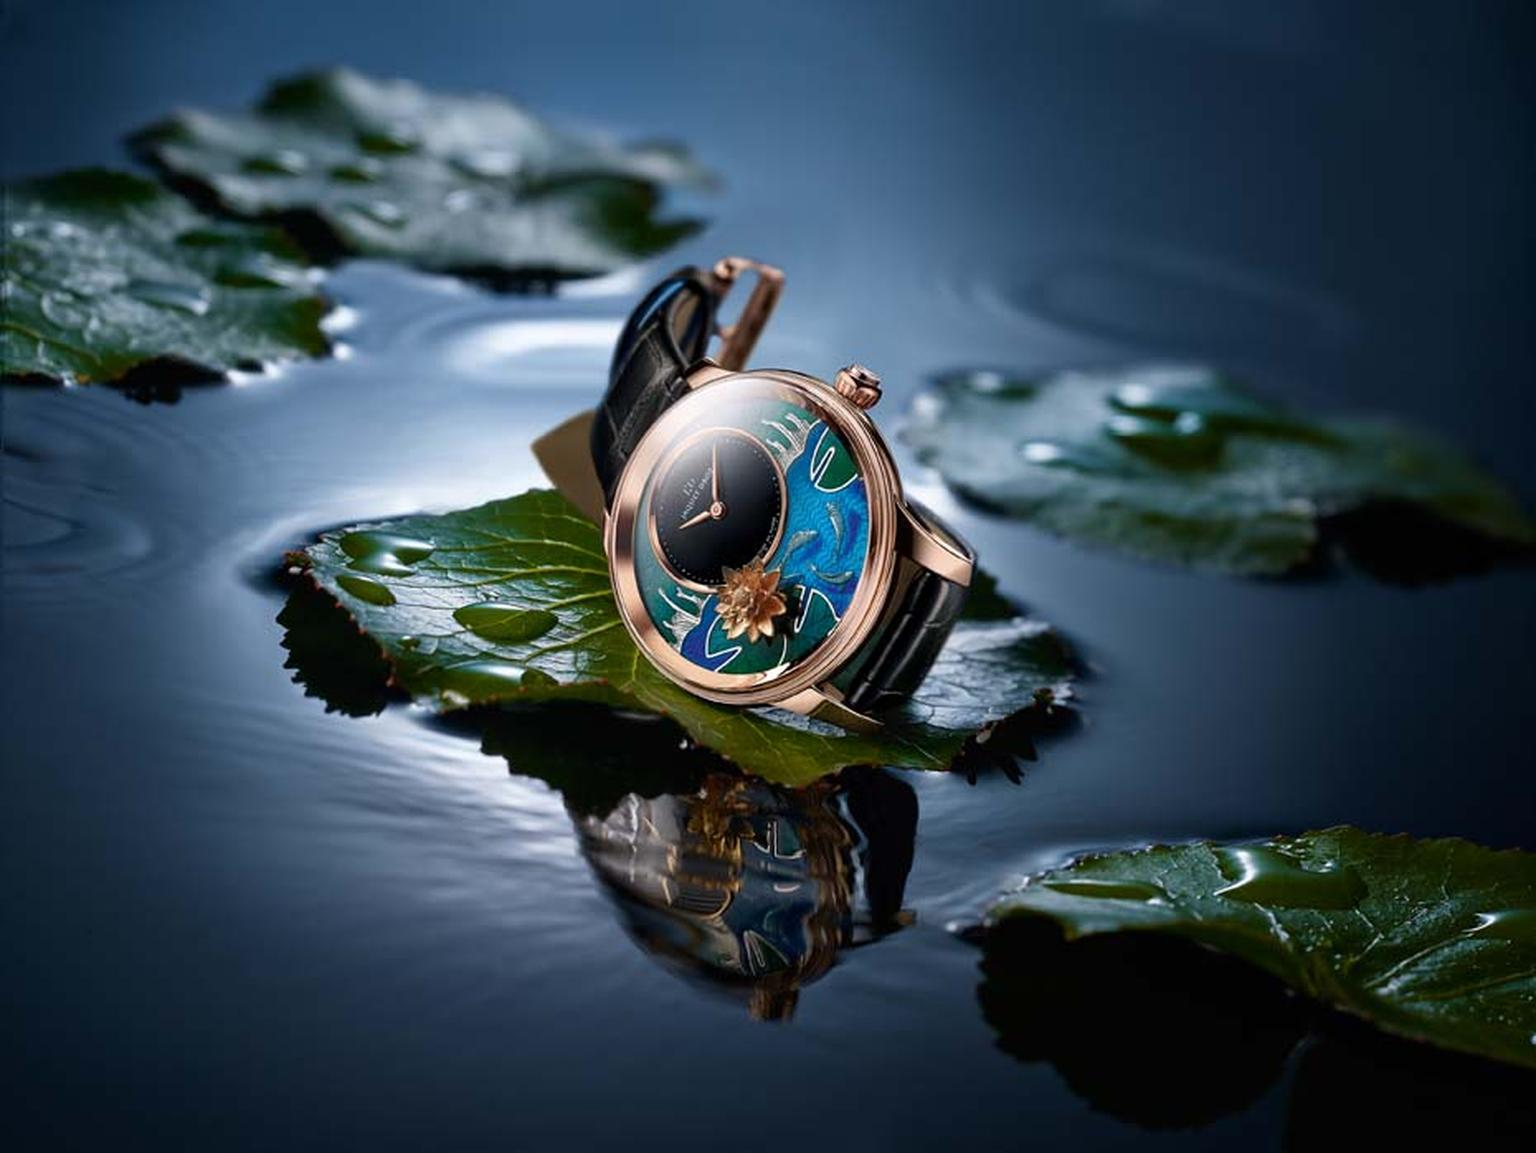 Butterfly and fish watches_Jaquet Droz_Petite Heure minute carps ambience.jpg